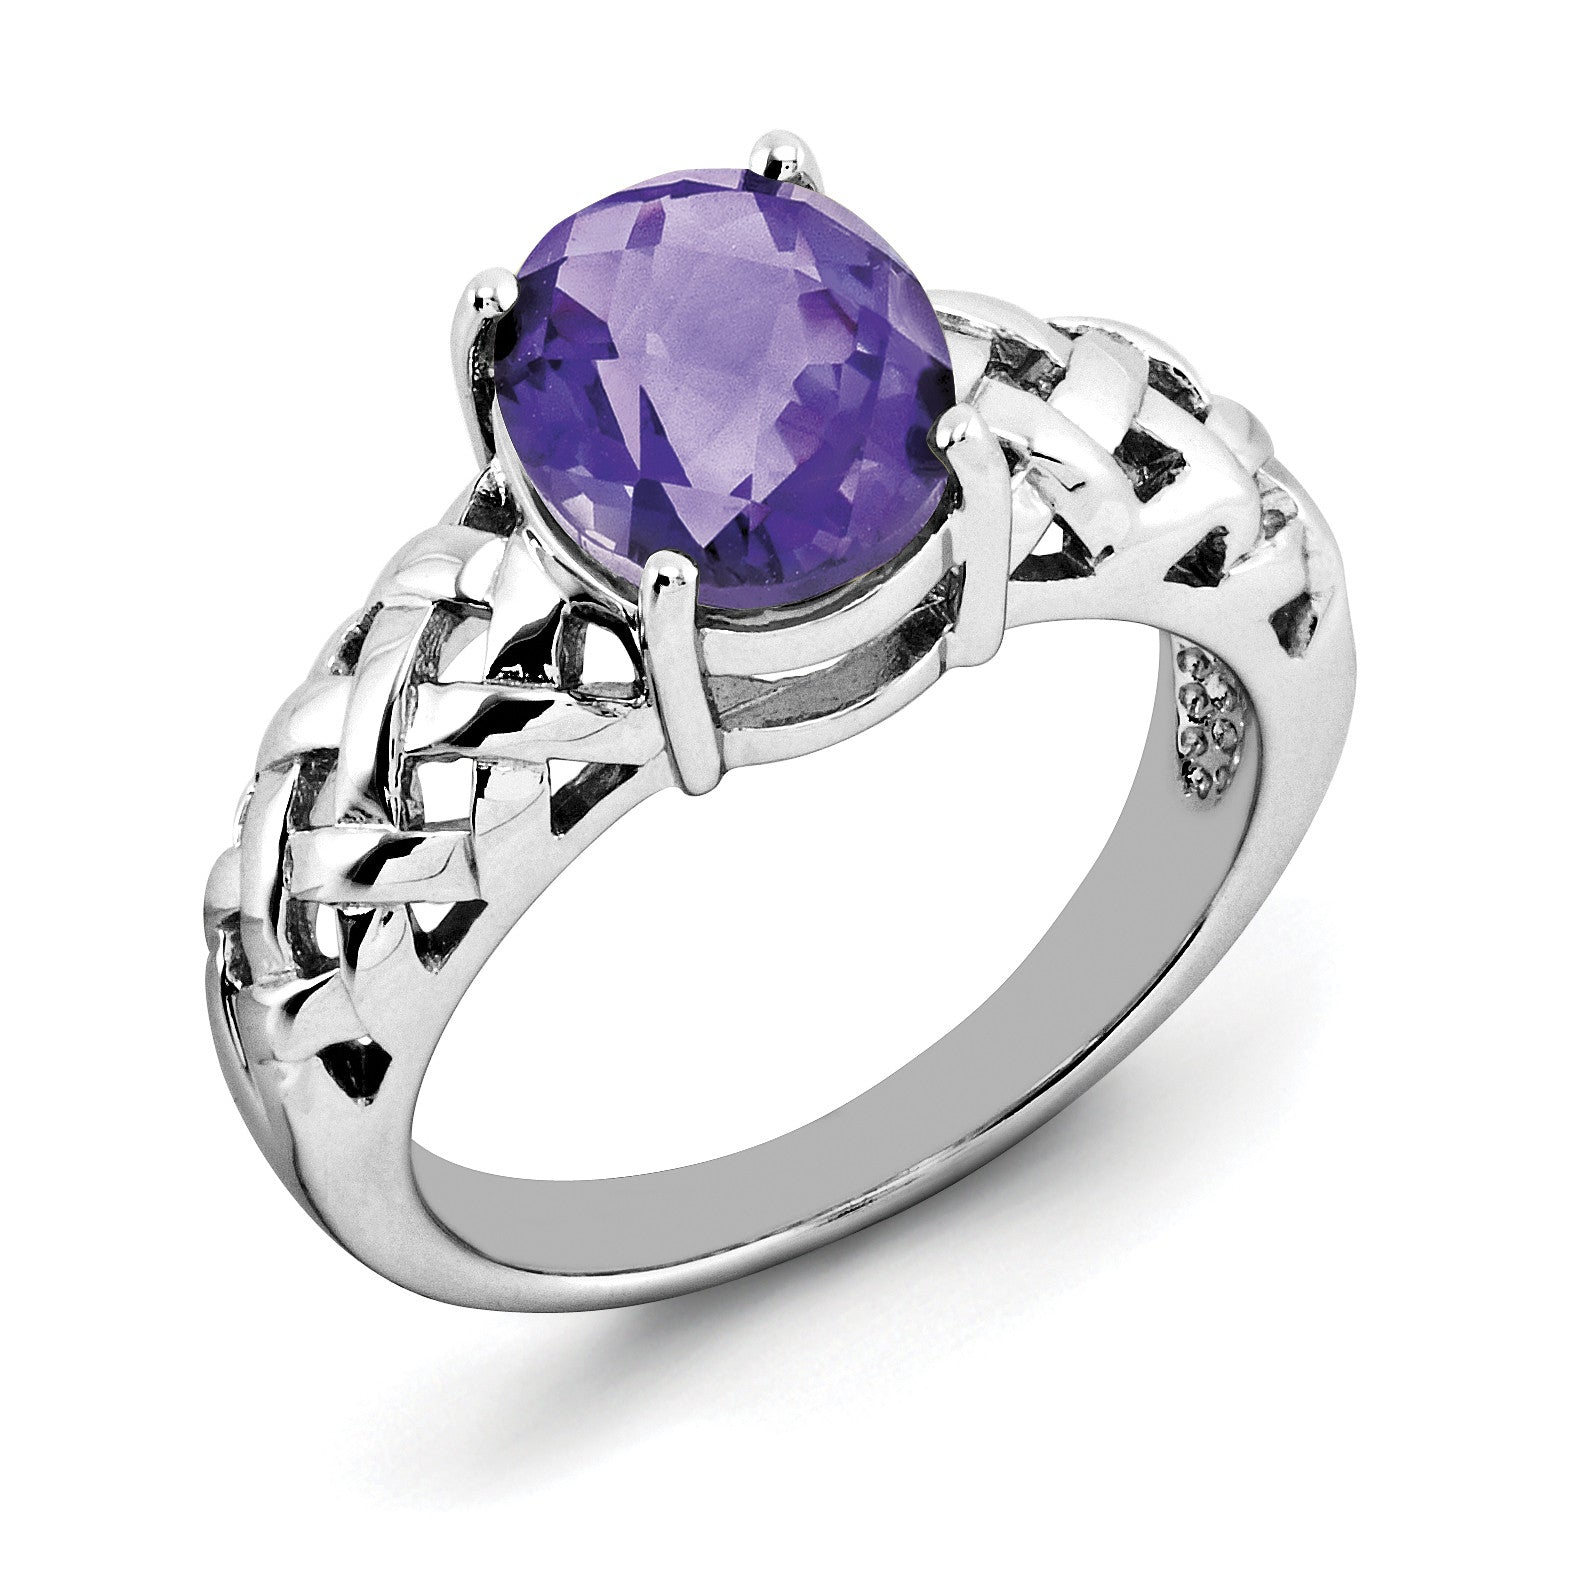 Sterling Silver Rhodium-plated Oval Amethyst Ring QR2888AM - shirin-diamonds